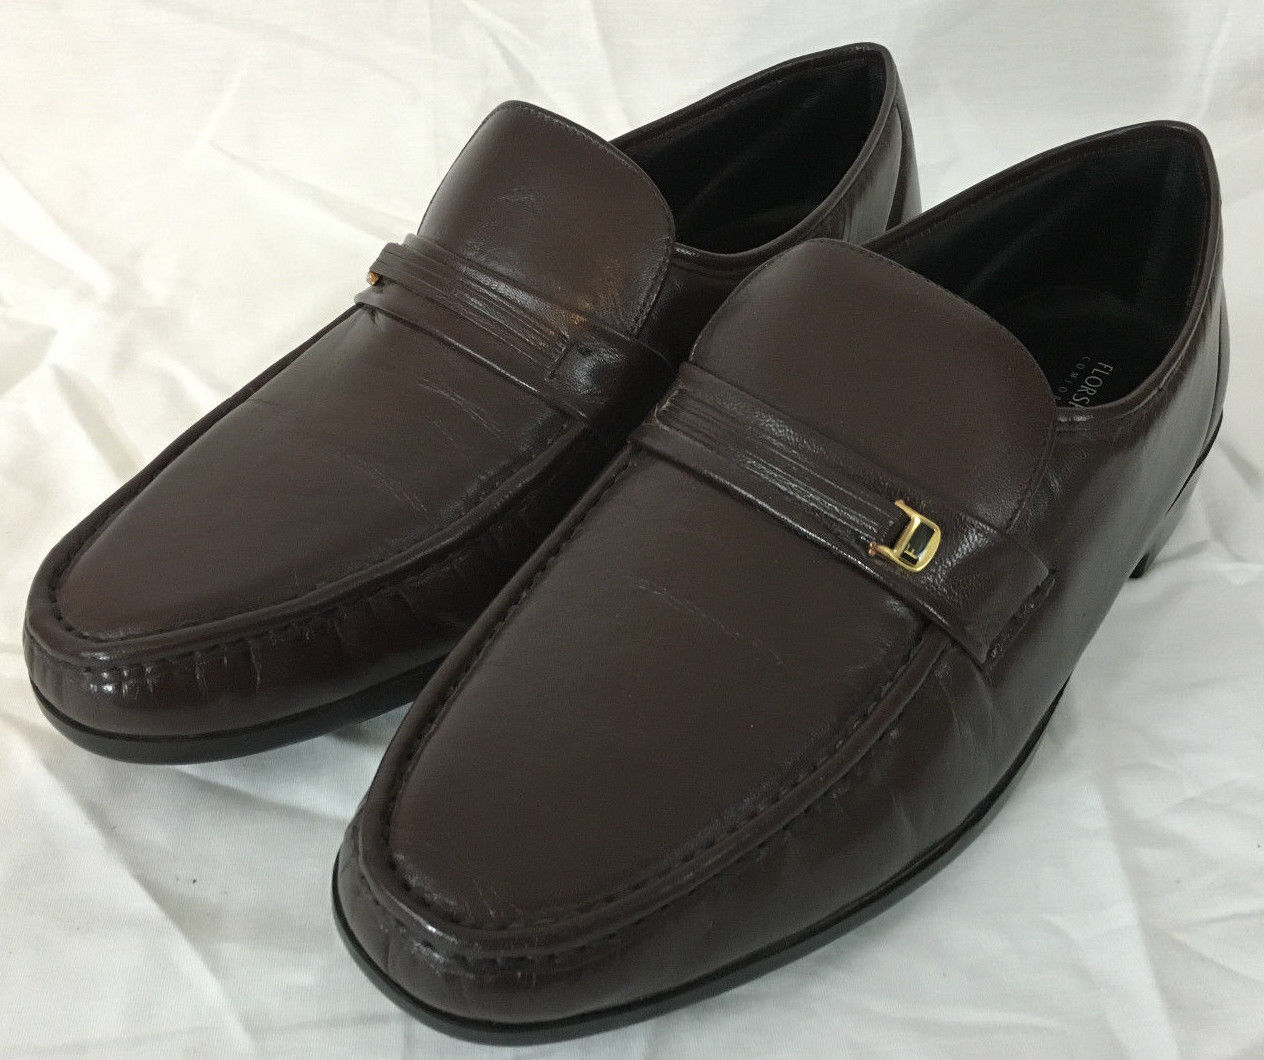 8a066f96b91 57. 57. Previous. Florsheim Comfortech Brown Leather Penny Loafers Men s  Size ...